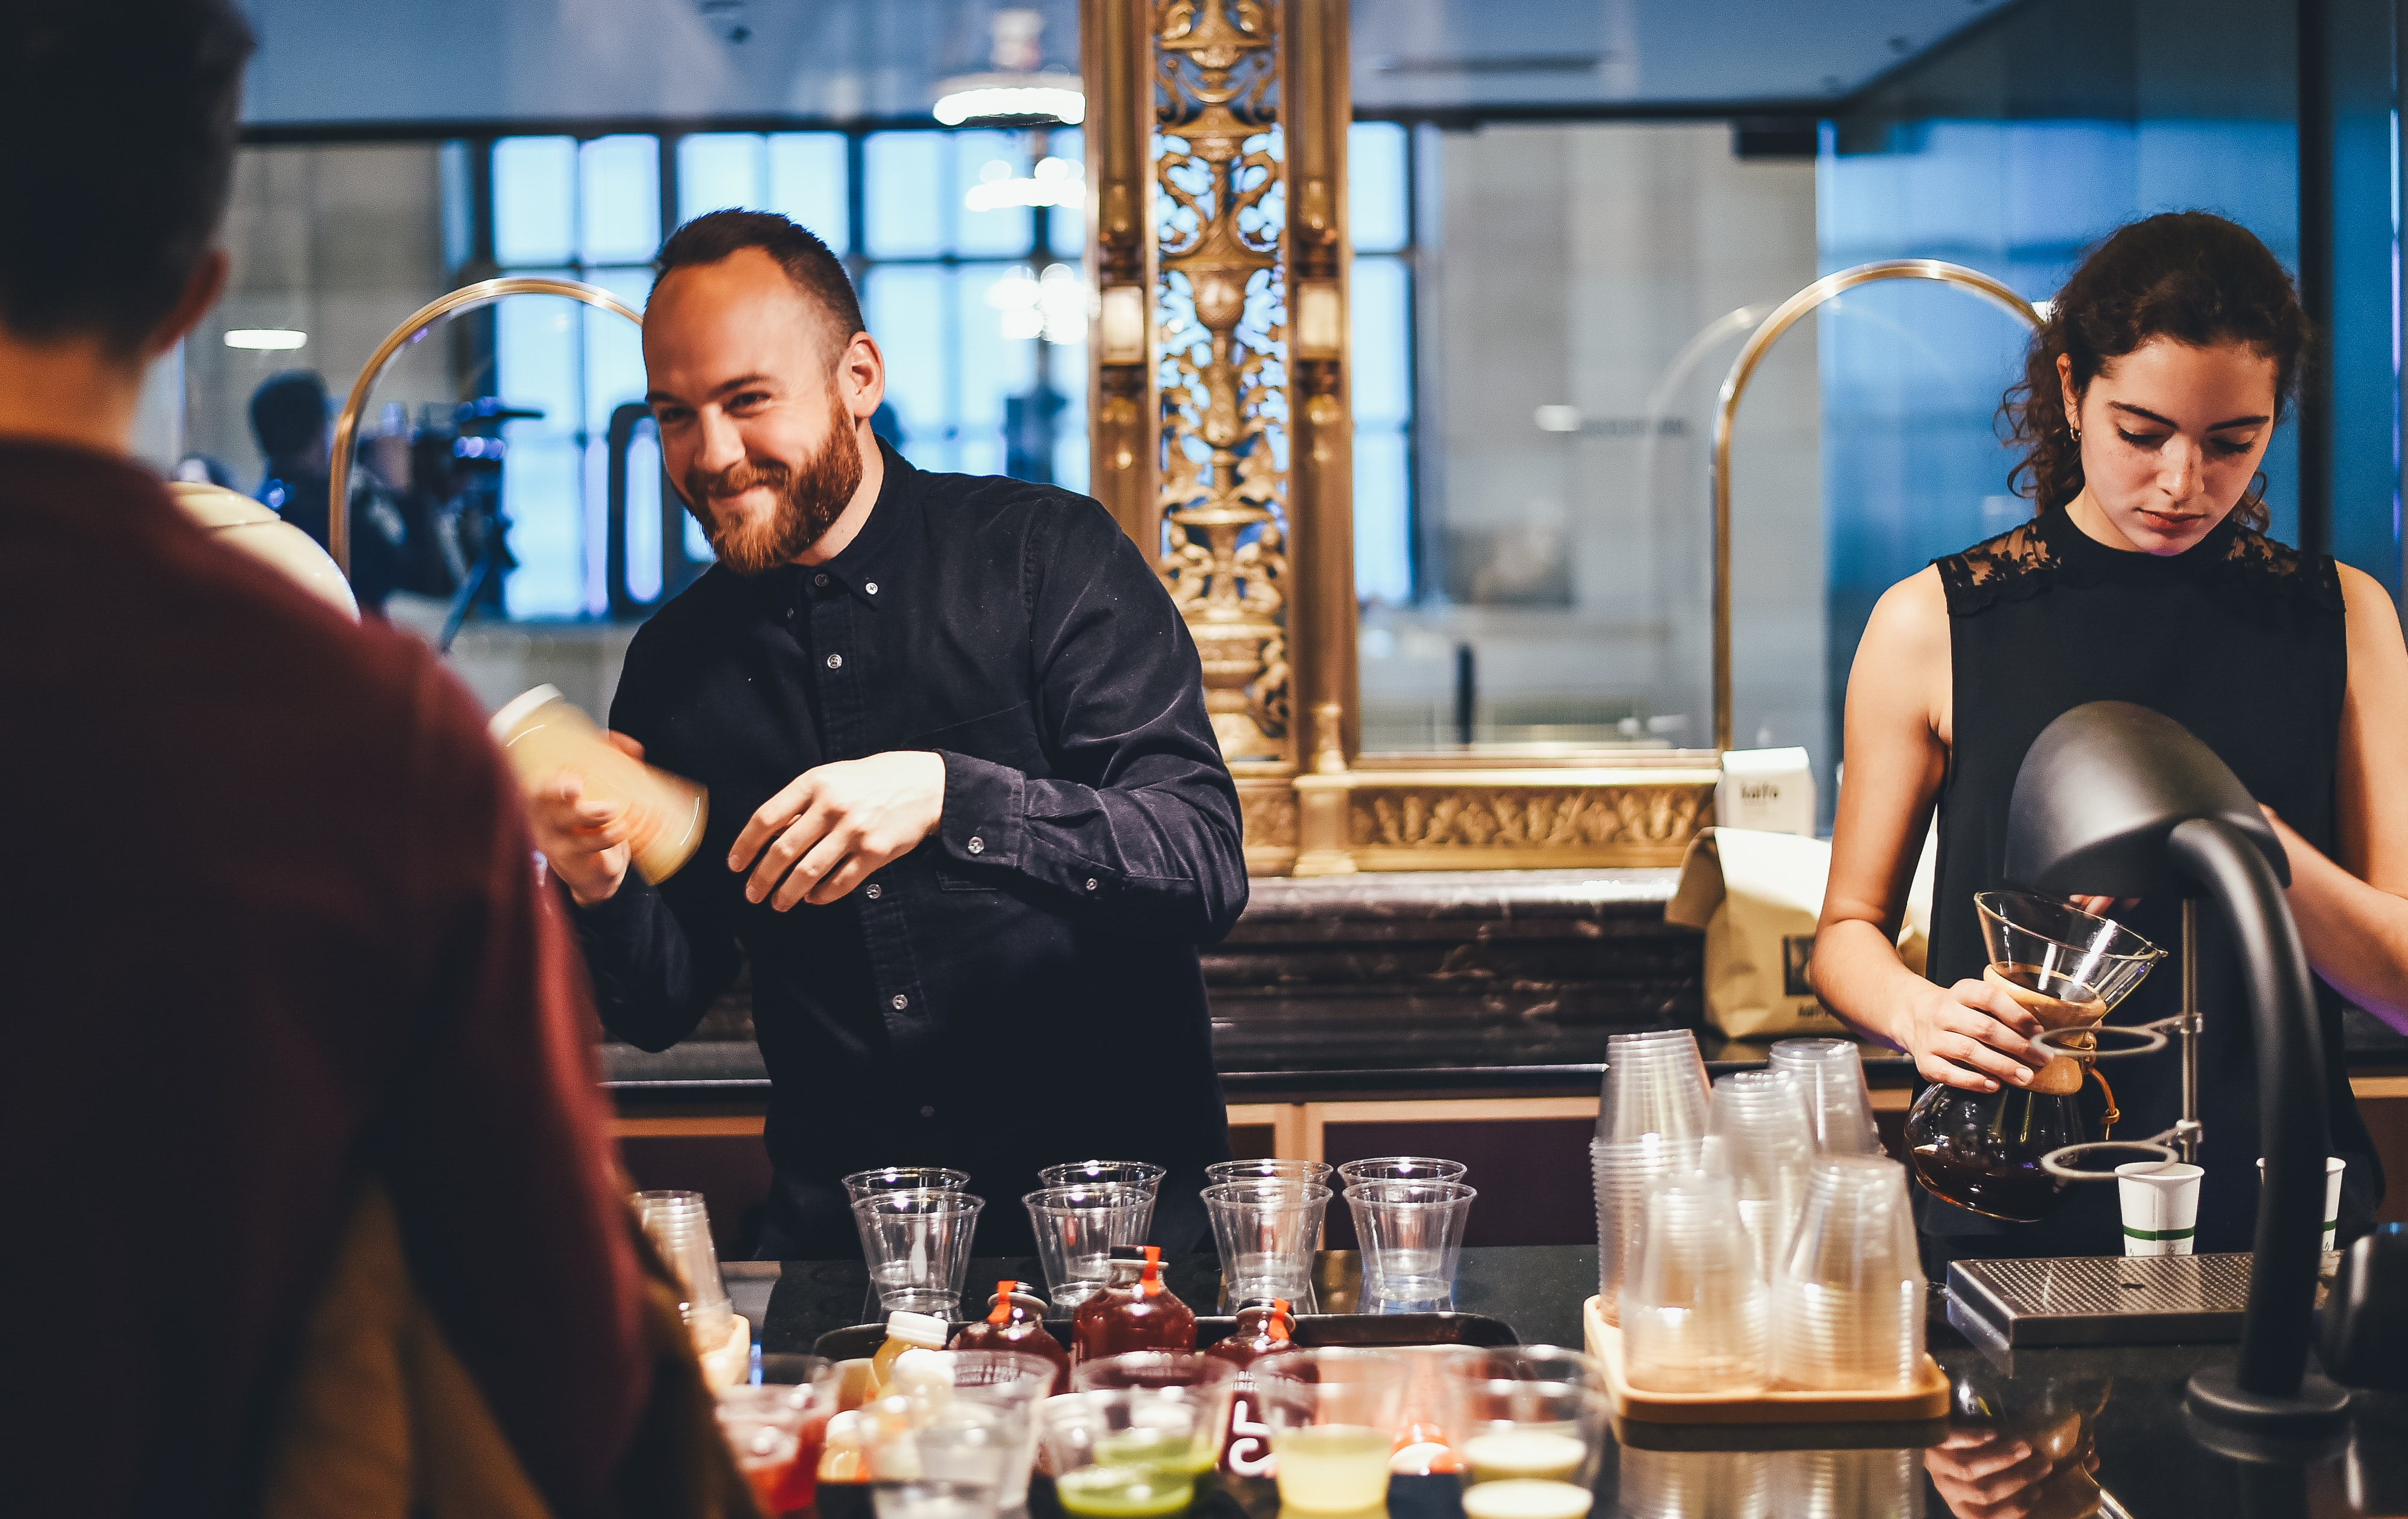 Bartenders of different genders serving cocktail drinks in a bar